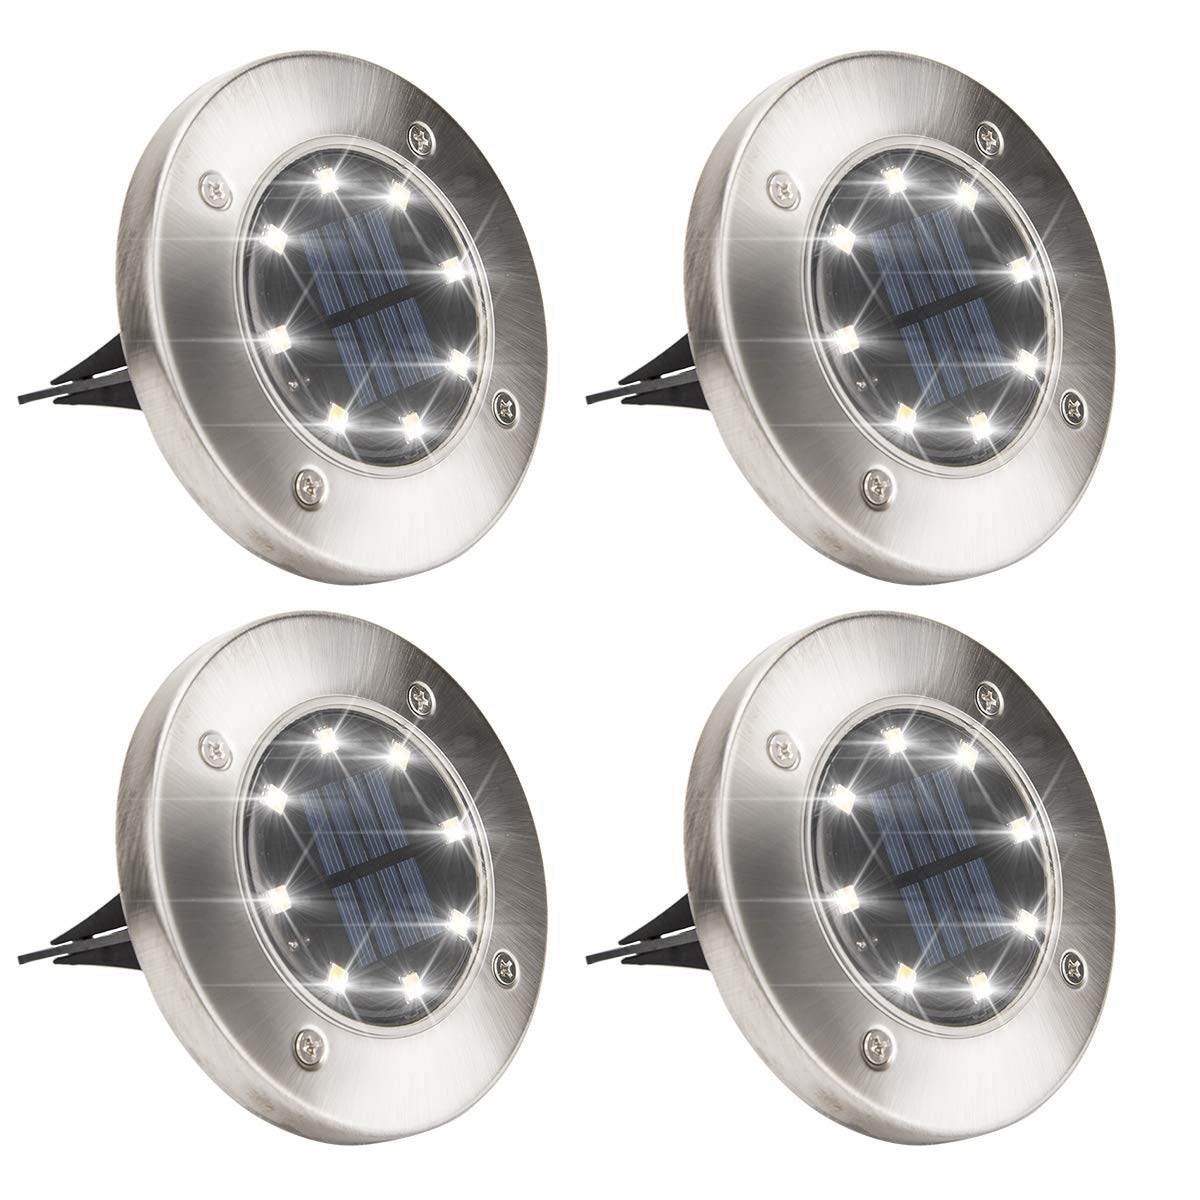 Solpex Solar Powered Disk Lights, 8LED Solar Pathway Lights Outdoor Waterproof Garden Landscape Lighting for Yard Deck Lawn Patio Walkway-White (4 Pack)